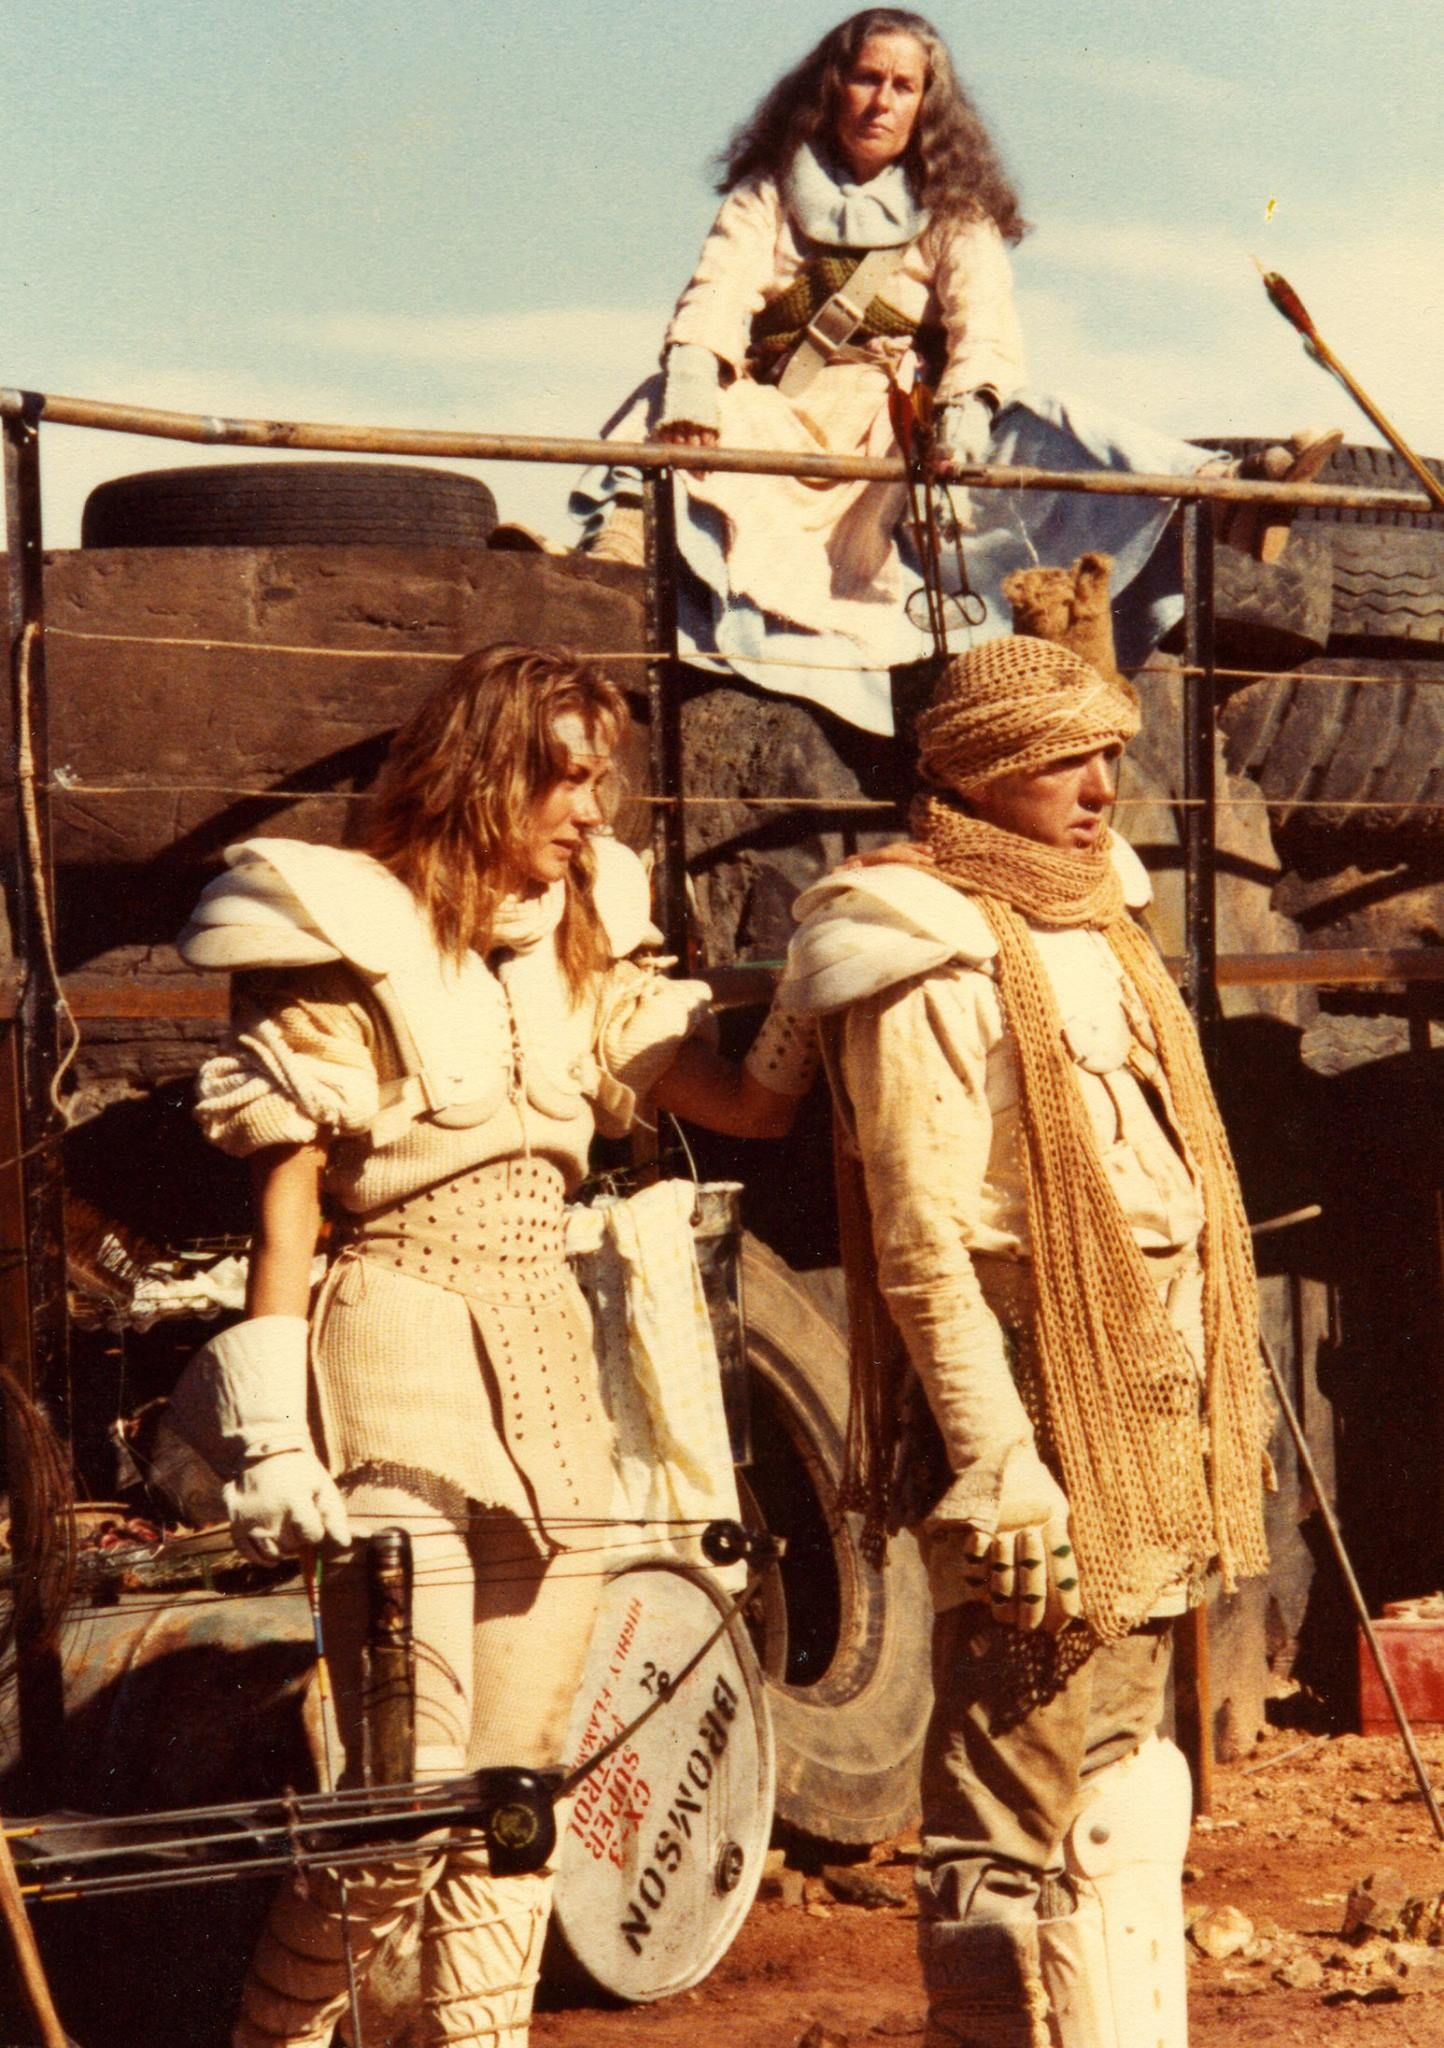 Virginia Hey Behind The Scenes On The Set Of Madmax 2 -6148